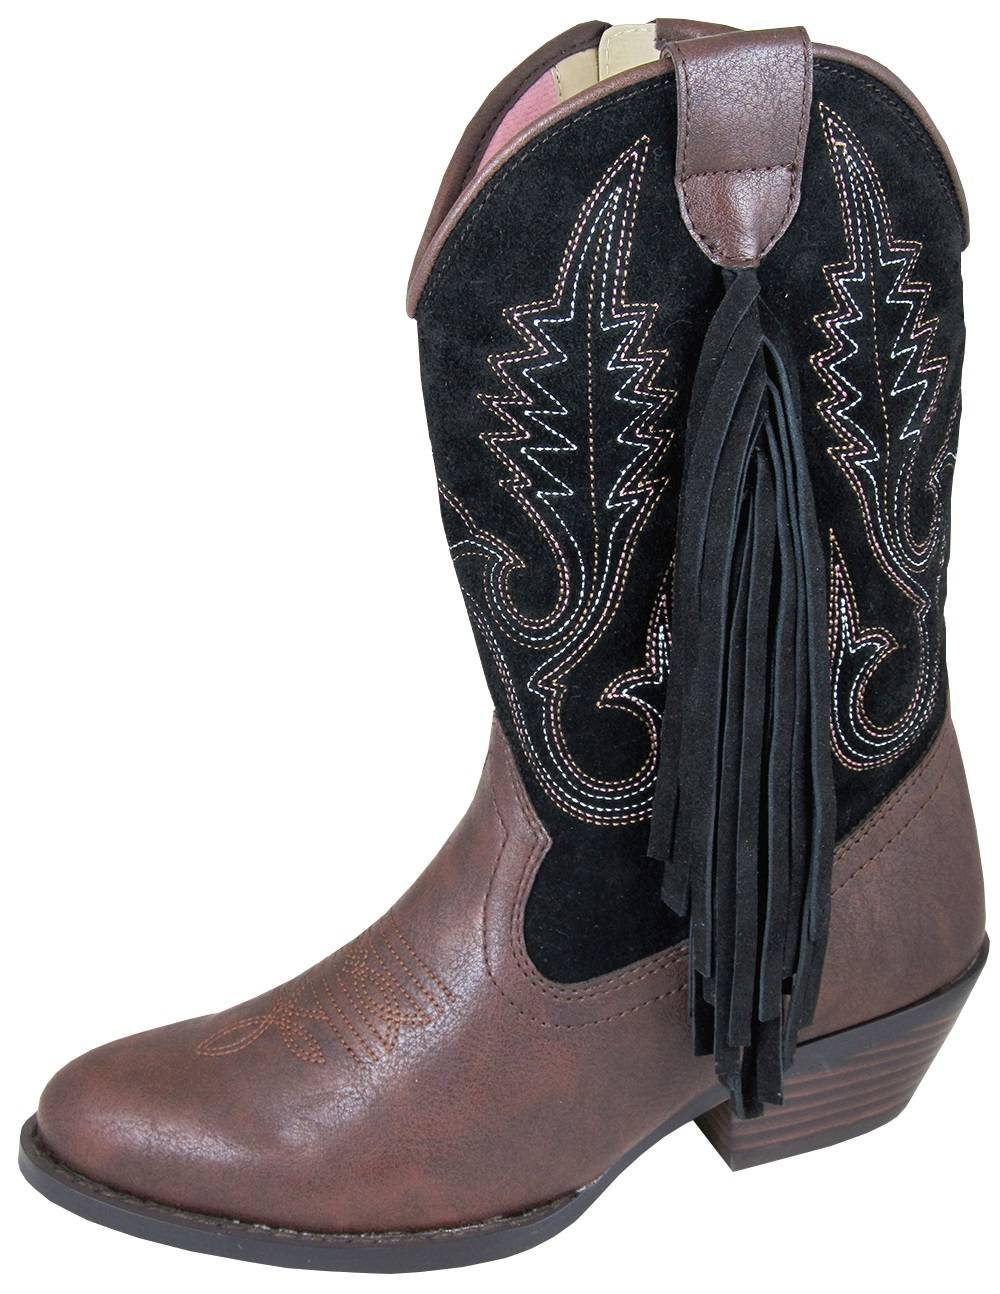 Smoky Mountain Clara Boots - Ladies - Brown